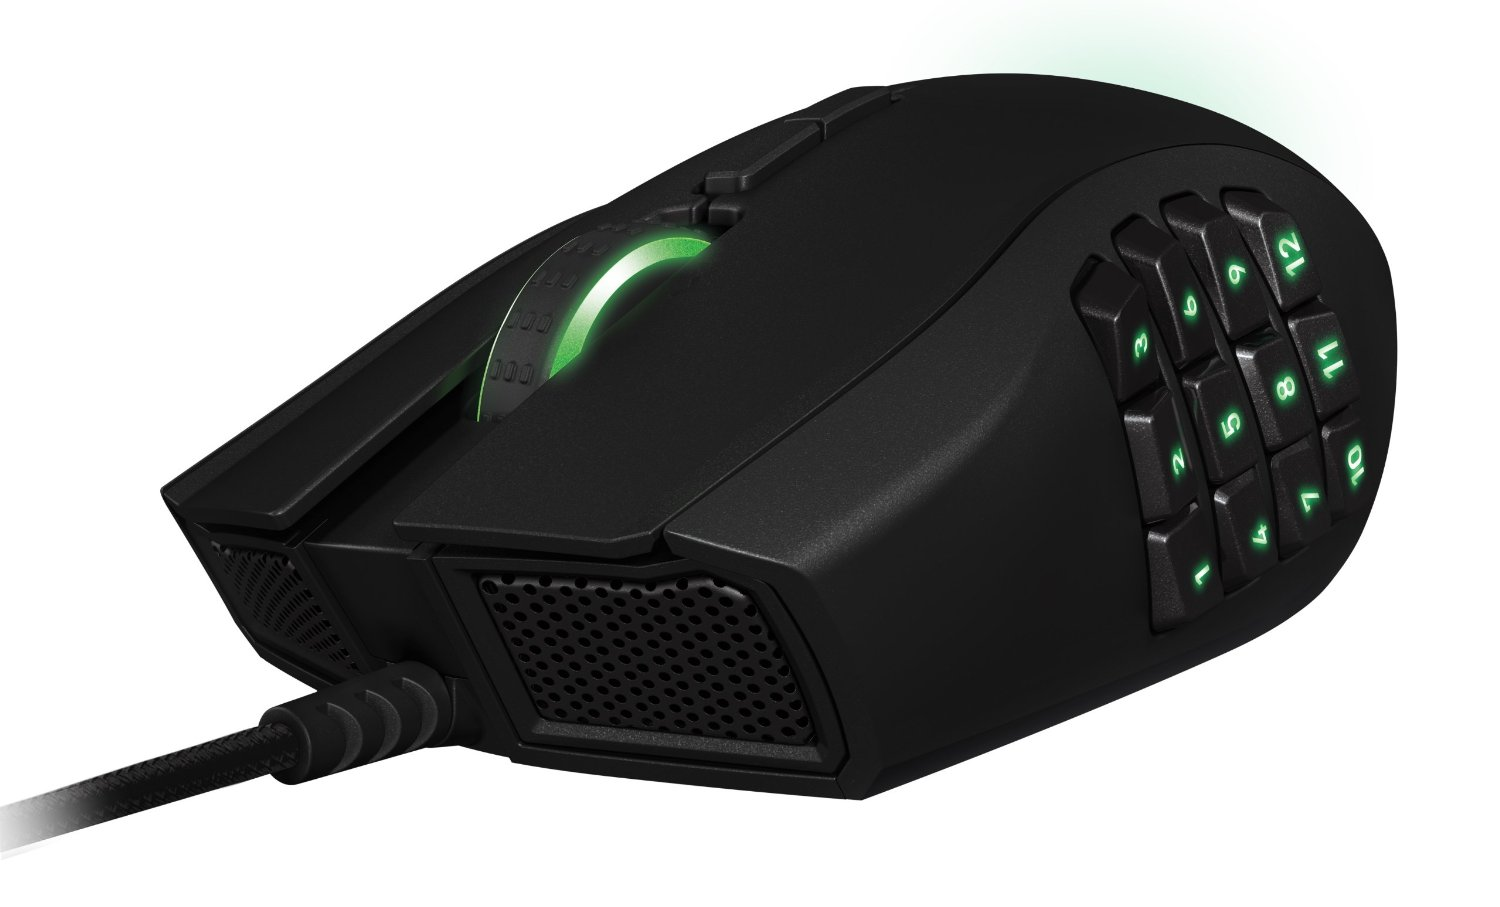 gaming mouse for autocad